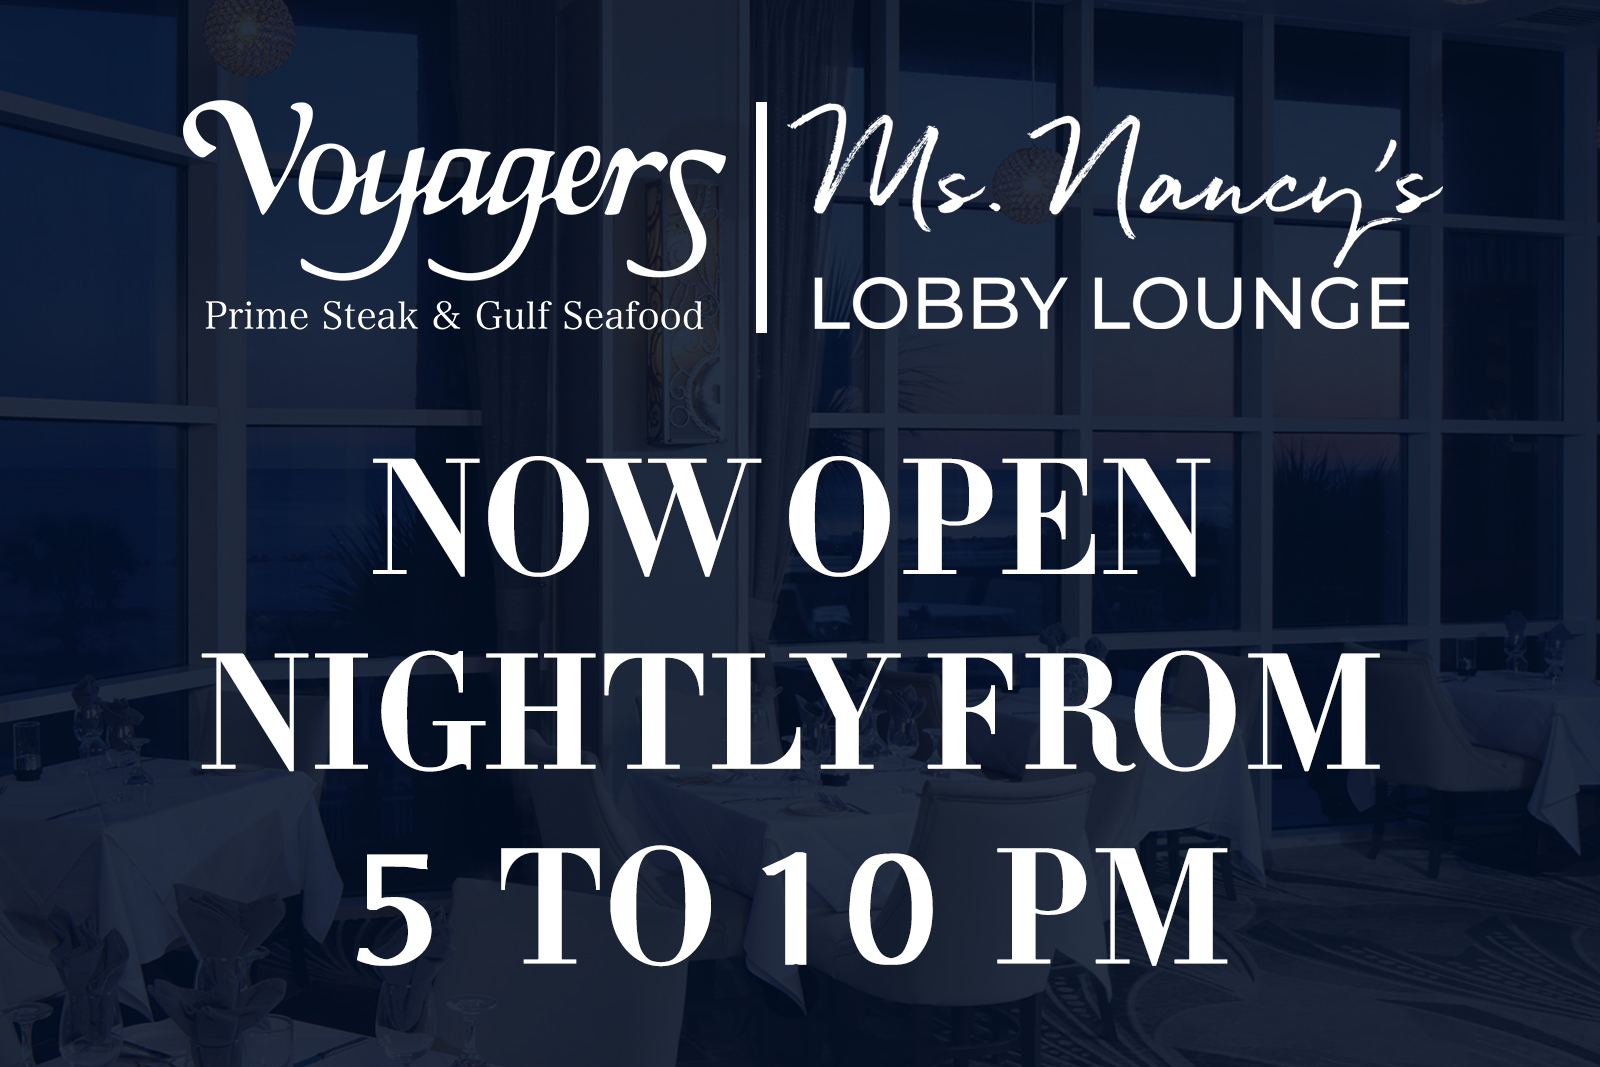 Voyagers reopening